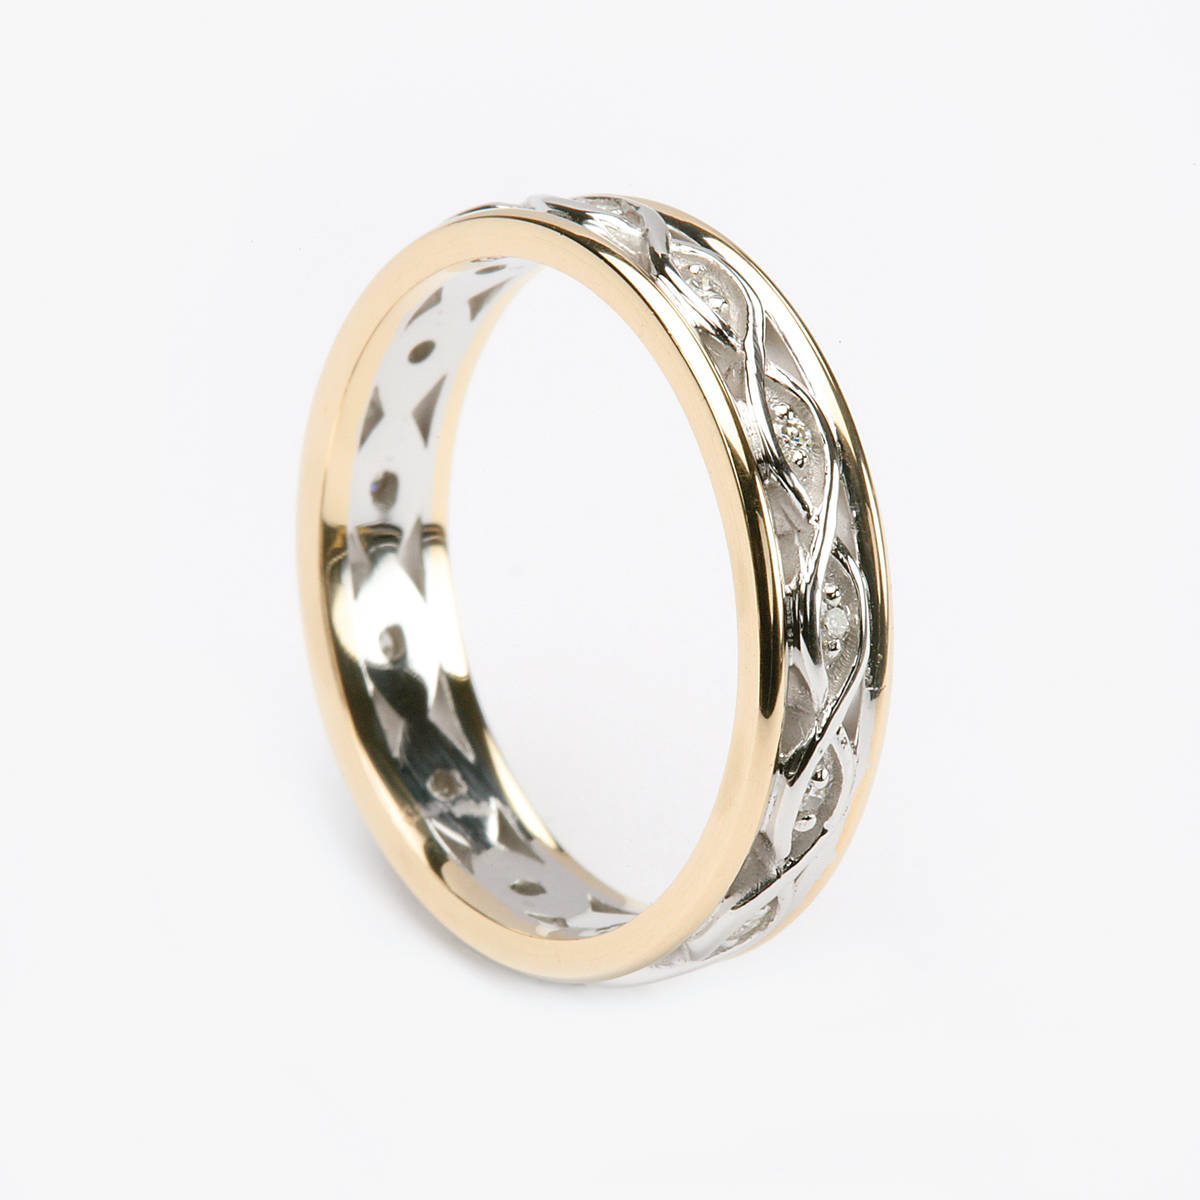 14 carat white gold lady's Celtic style two lines entwined wedding ring with light yellow rims and 0.10 carat diamonds.